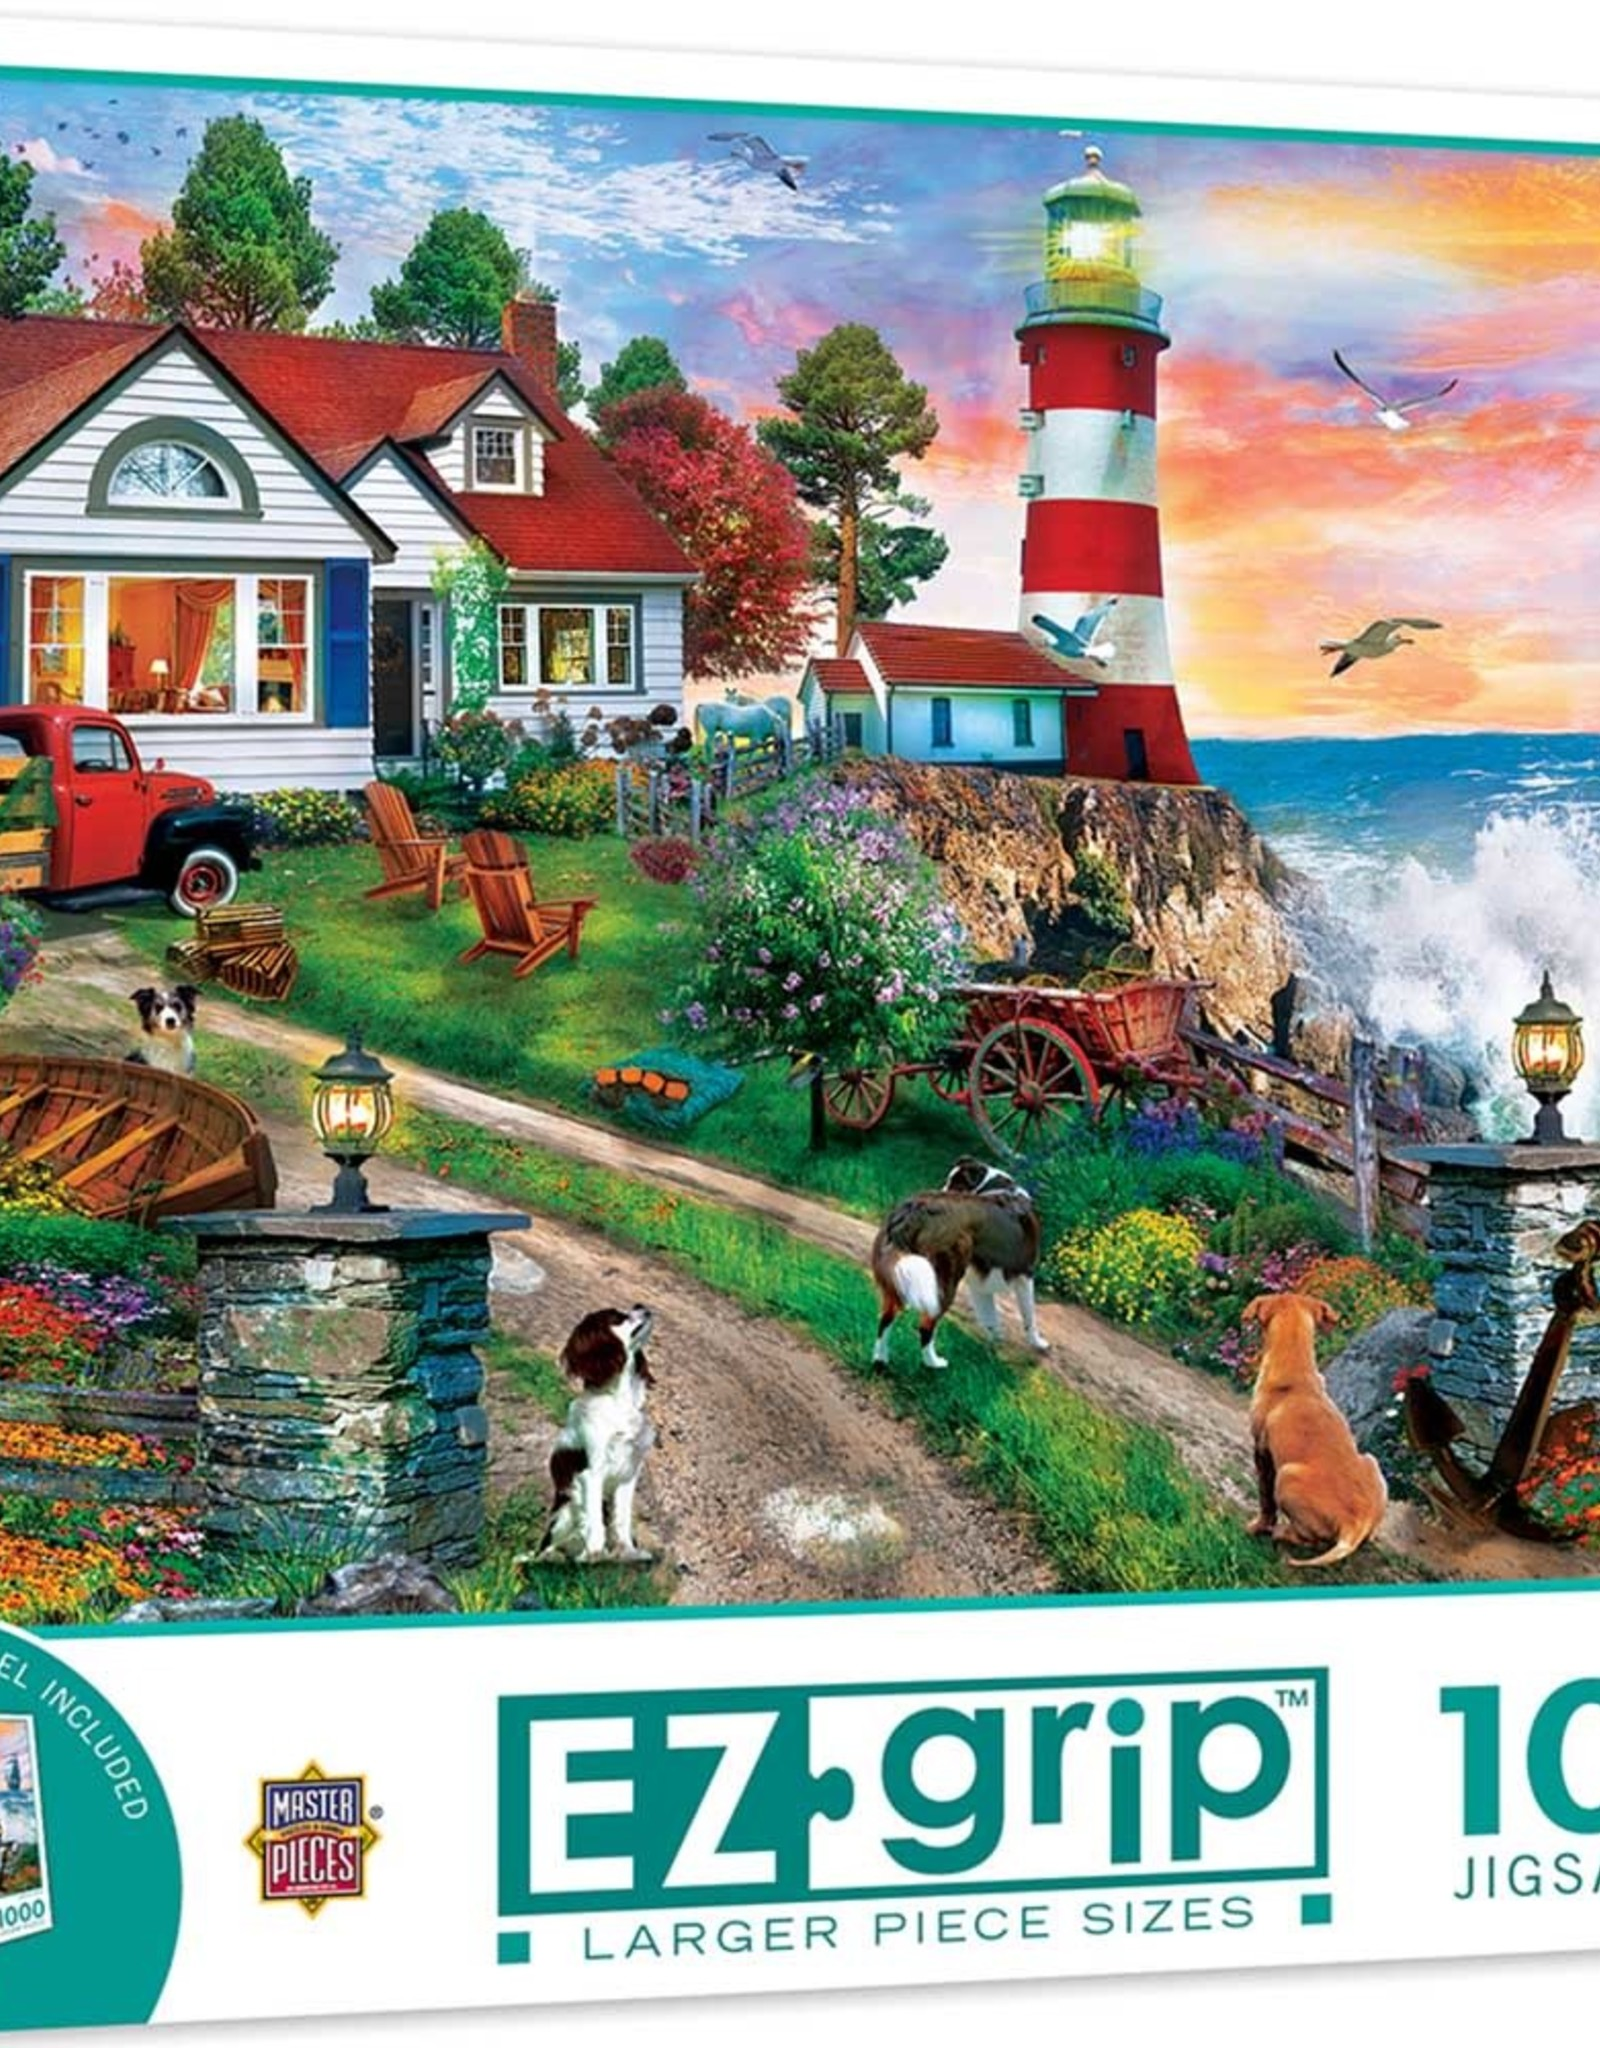 Master Pieces 1000pc Lighthouse Keepers EZGrip